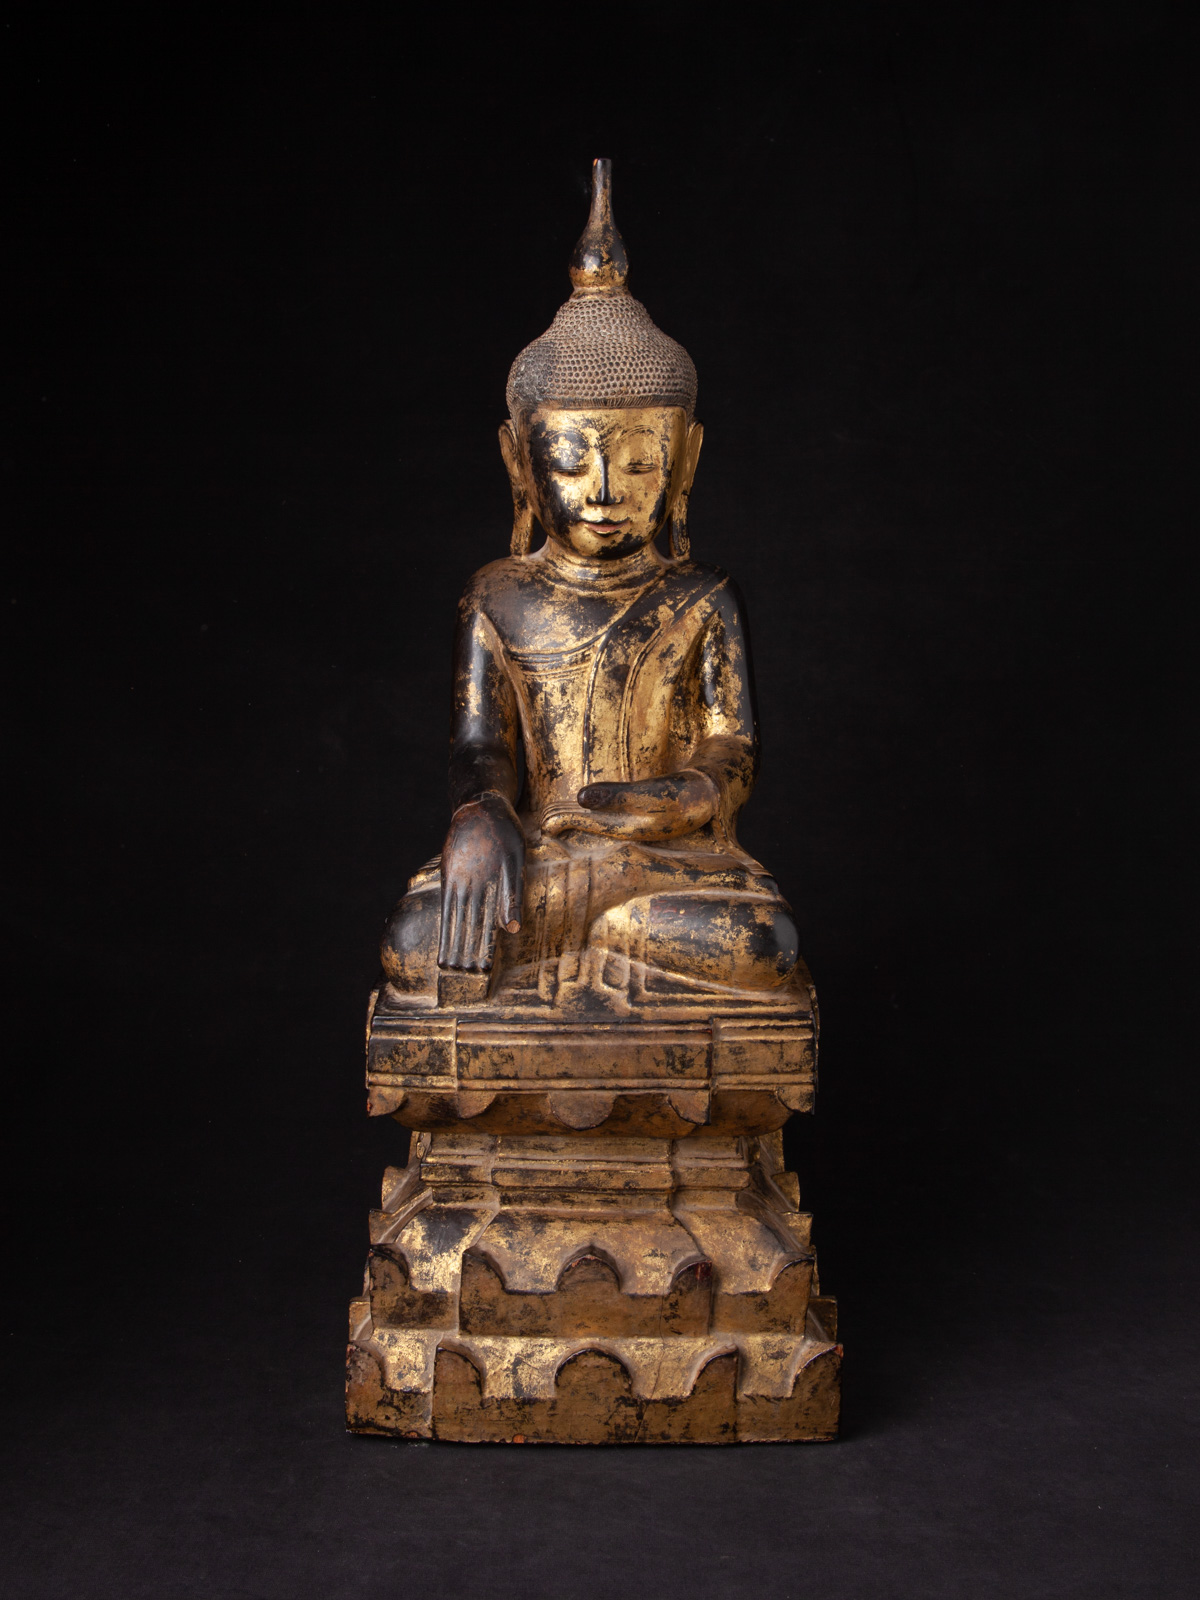 Very nice antique Shan Buddha statue from Burma made from Wood